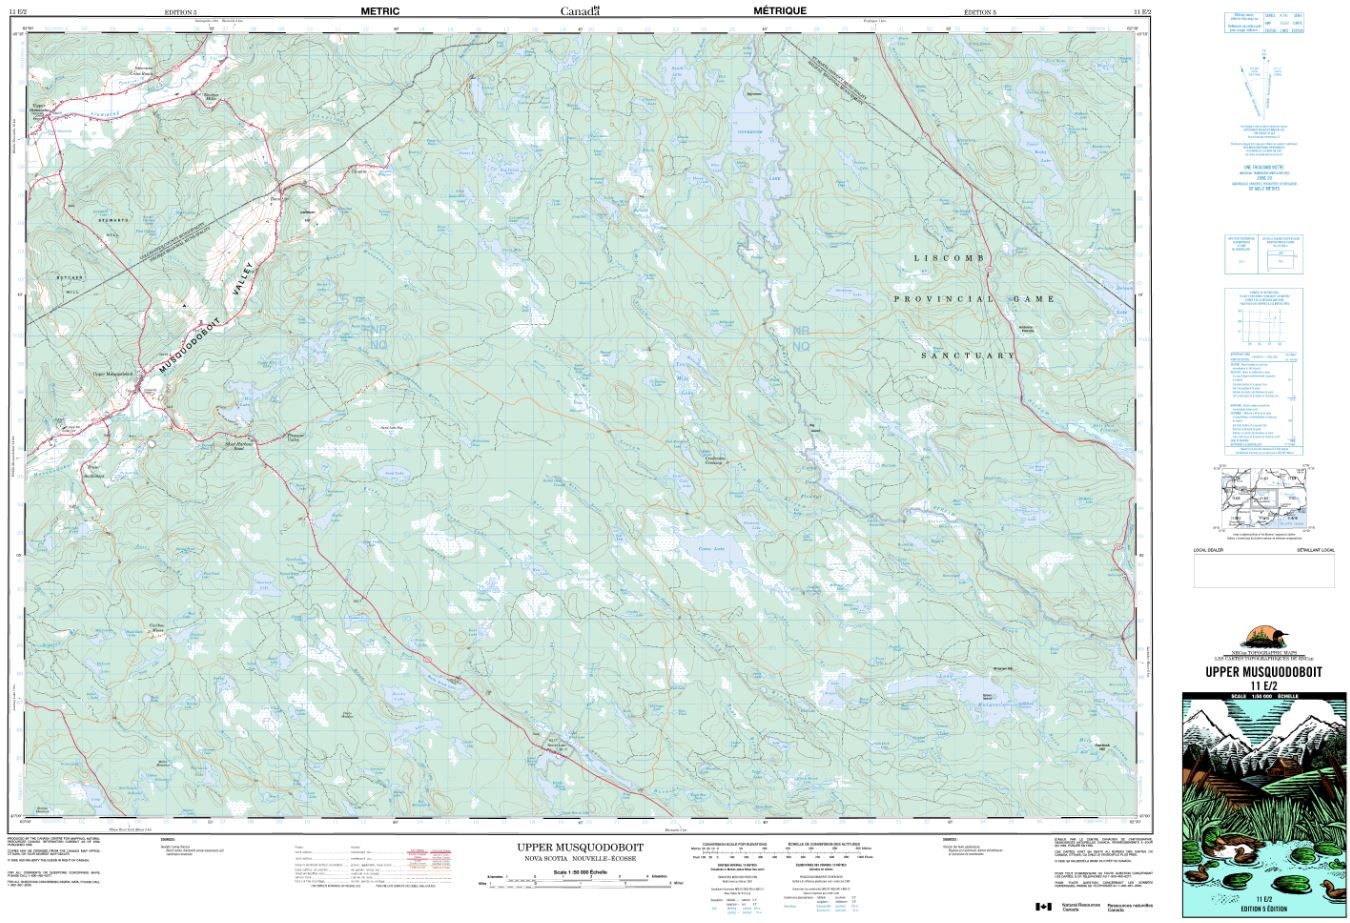 11E/02 Upper Musquodoboit Topographic Map Nova Scotia